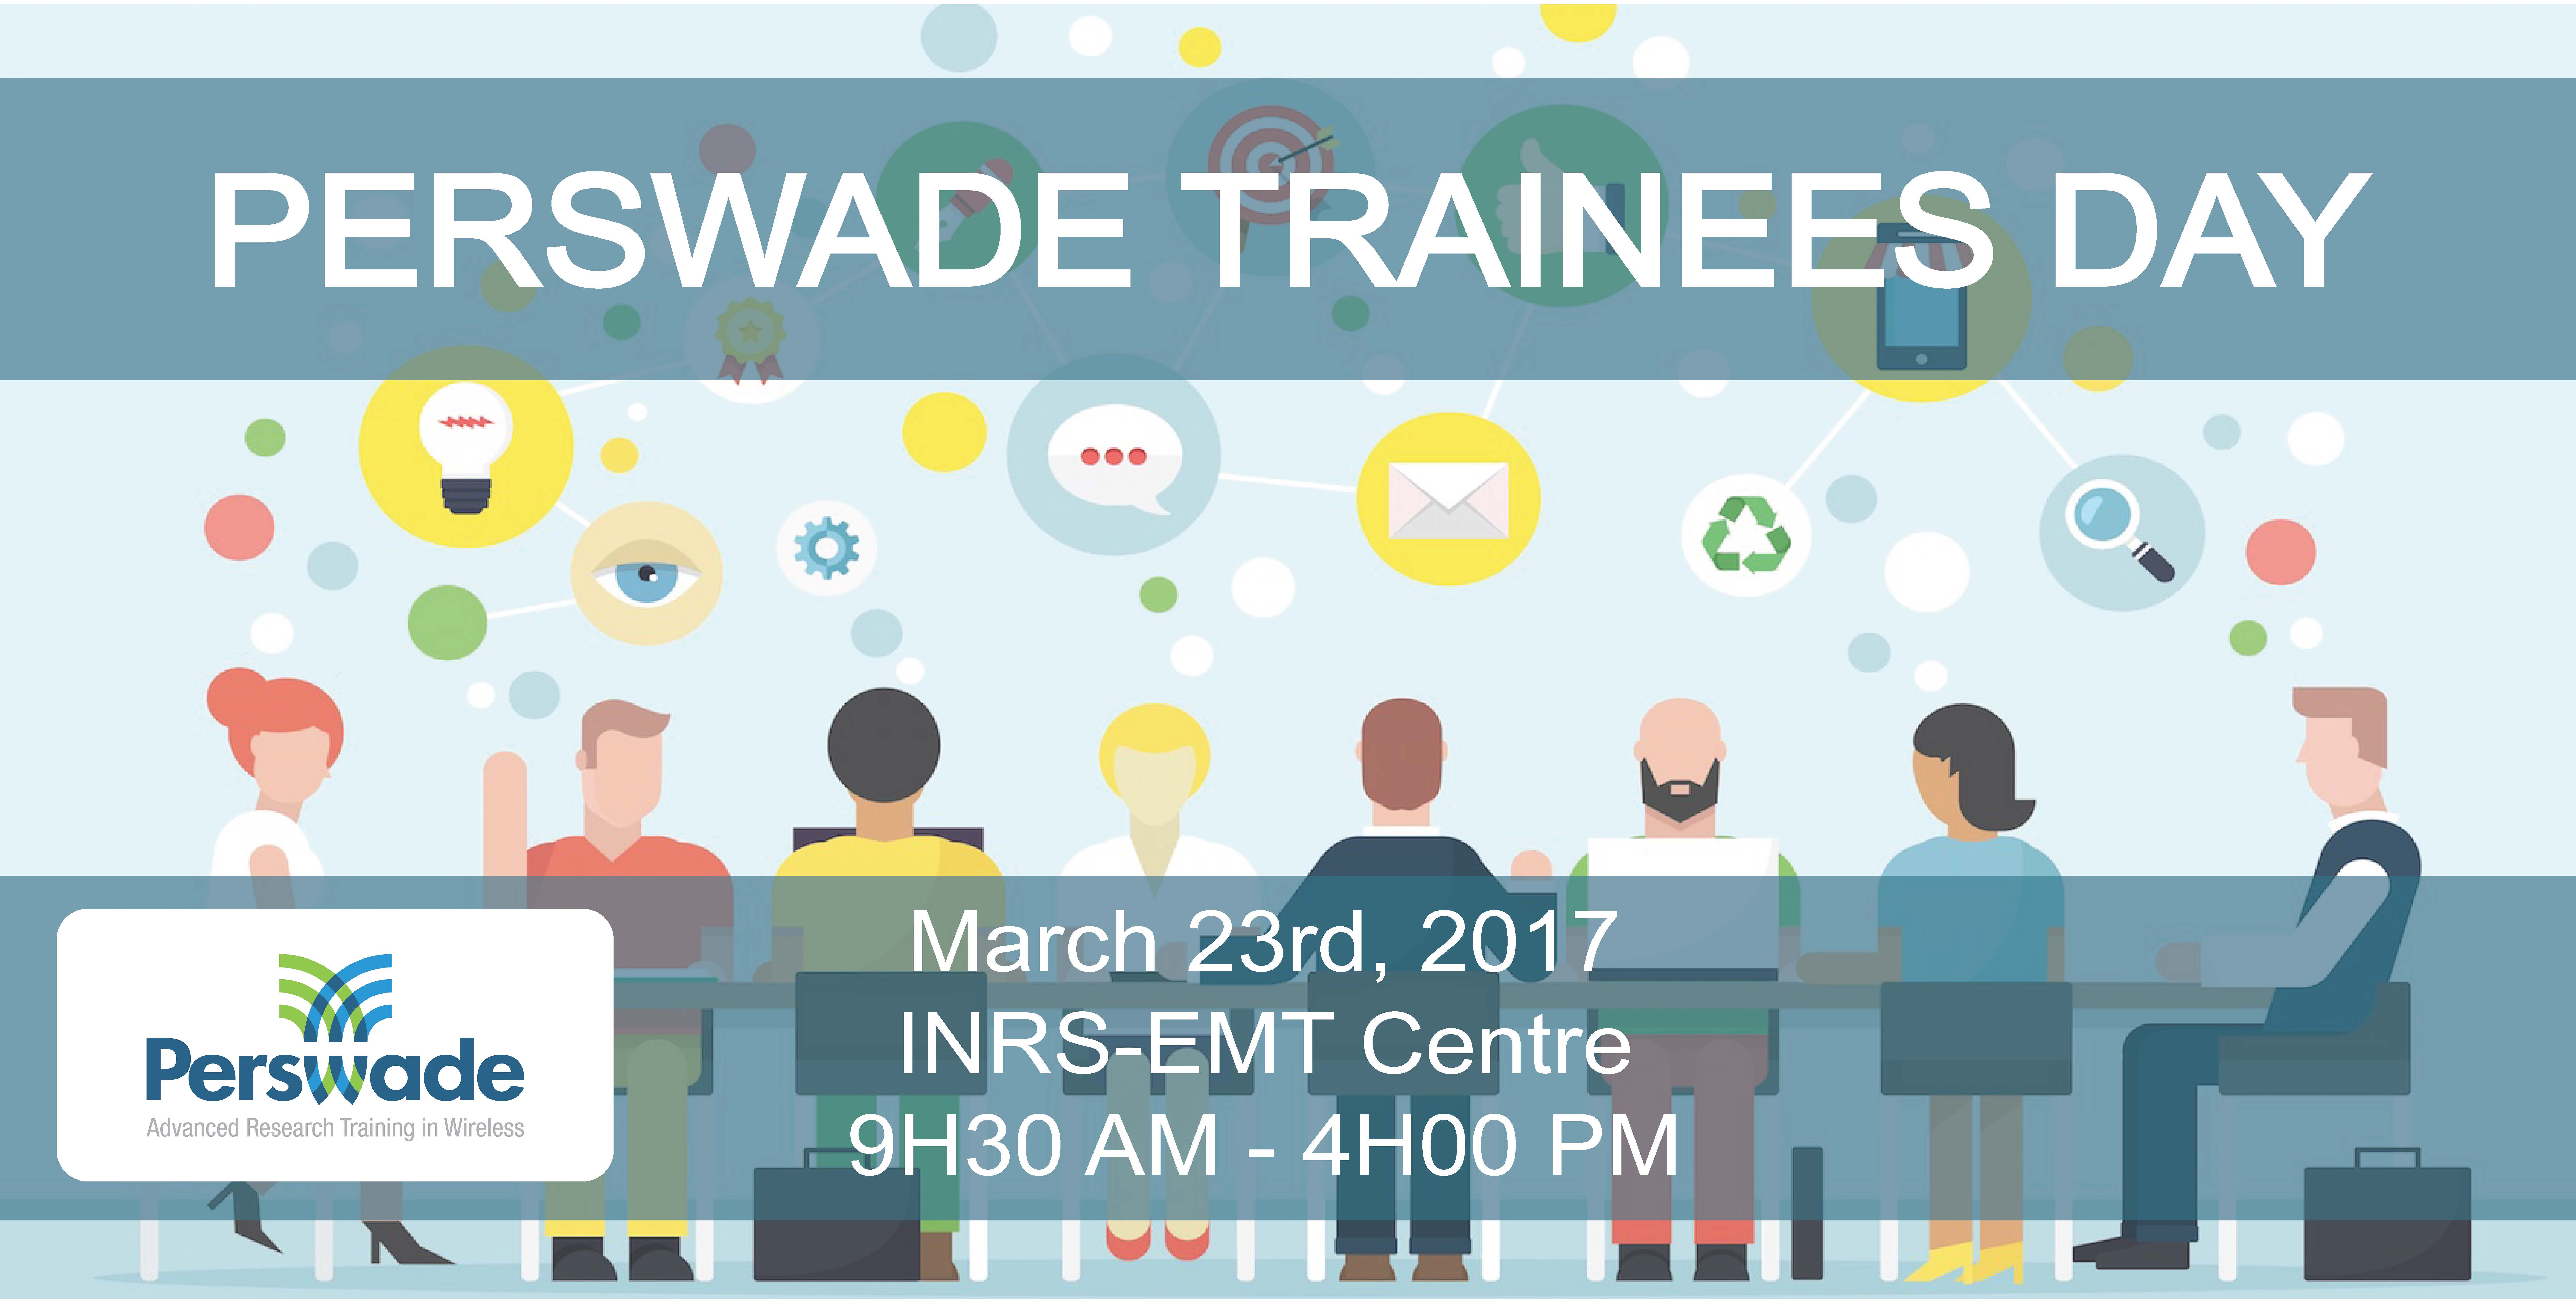 PERSWADE_TRAINEES_DAY